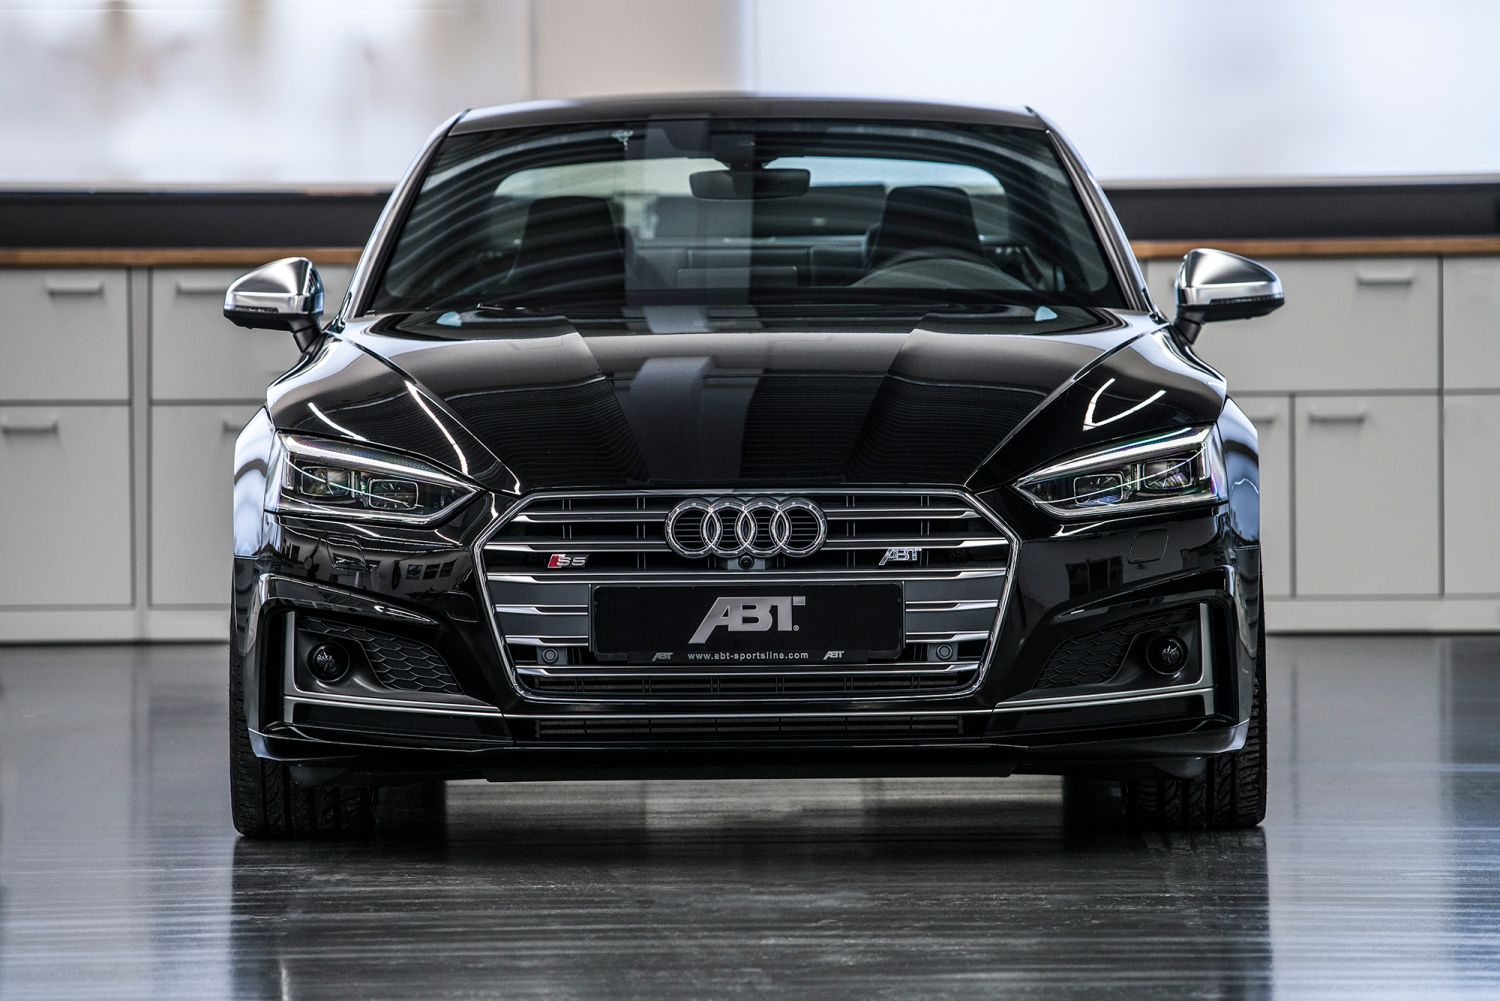 ABT Sportsline Brings 20% More Dynamism to 2018 Audi S5 | Automobile Magazine